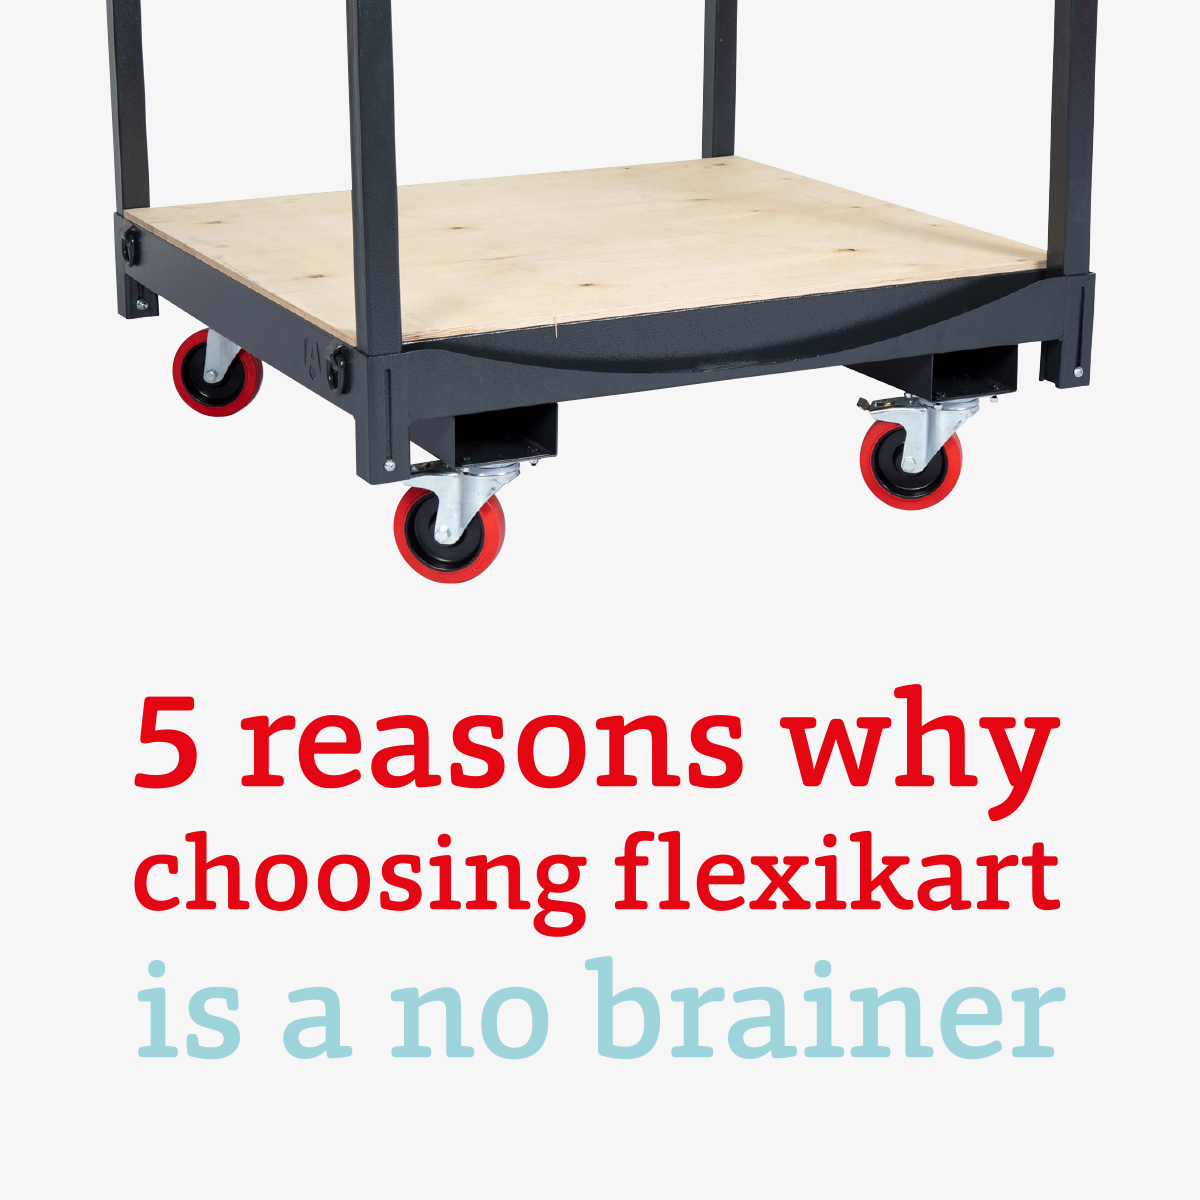 31793 Armorgard FlexiKart Article Asset ( Article Graphic)